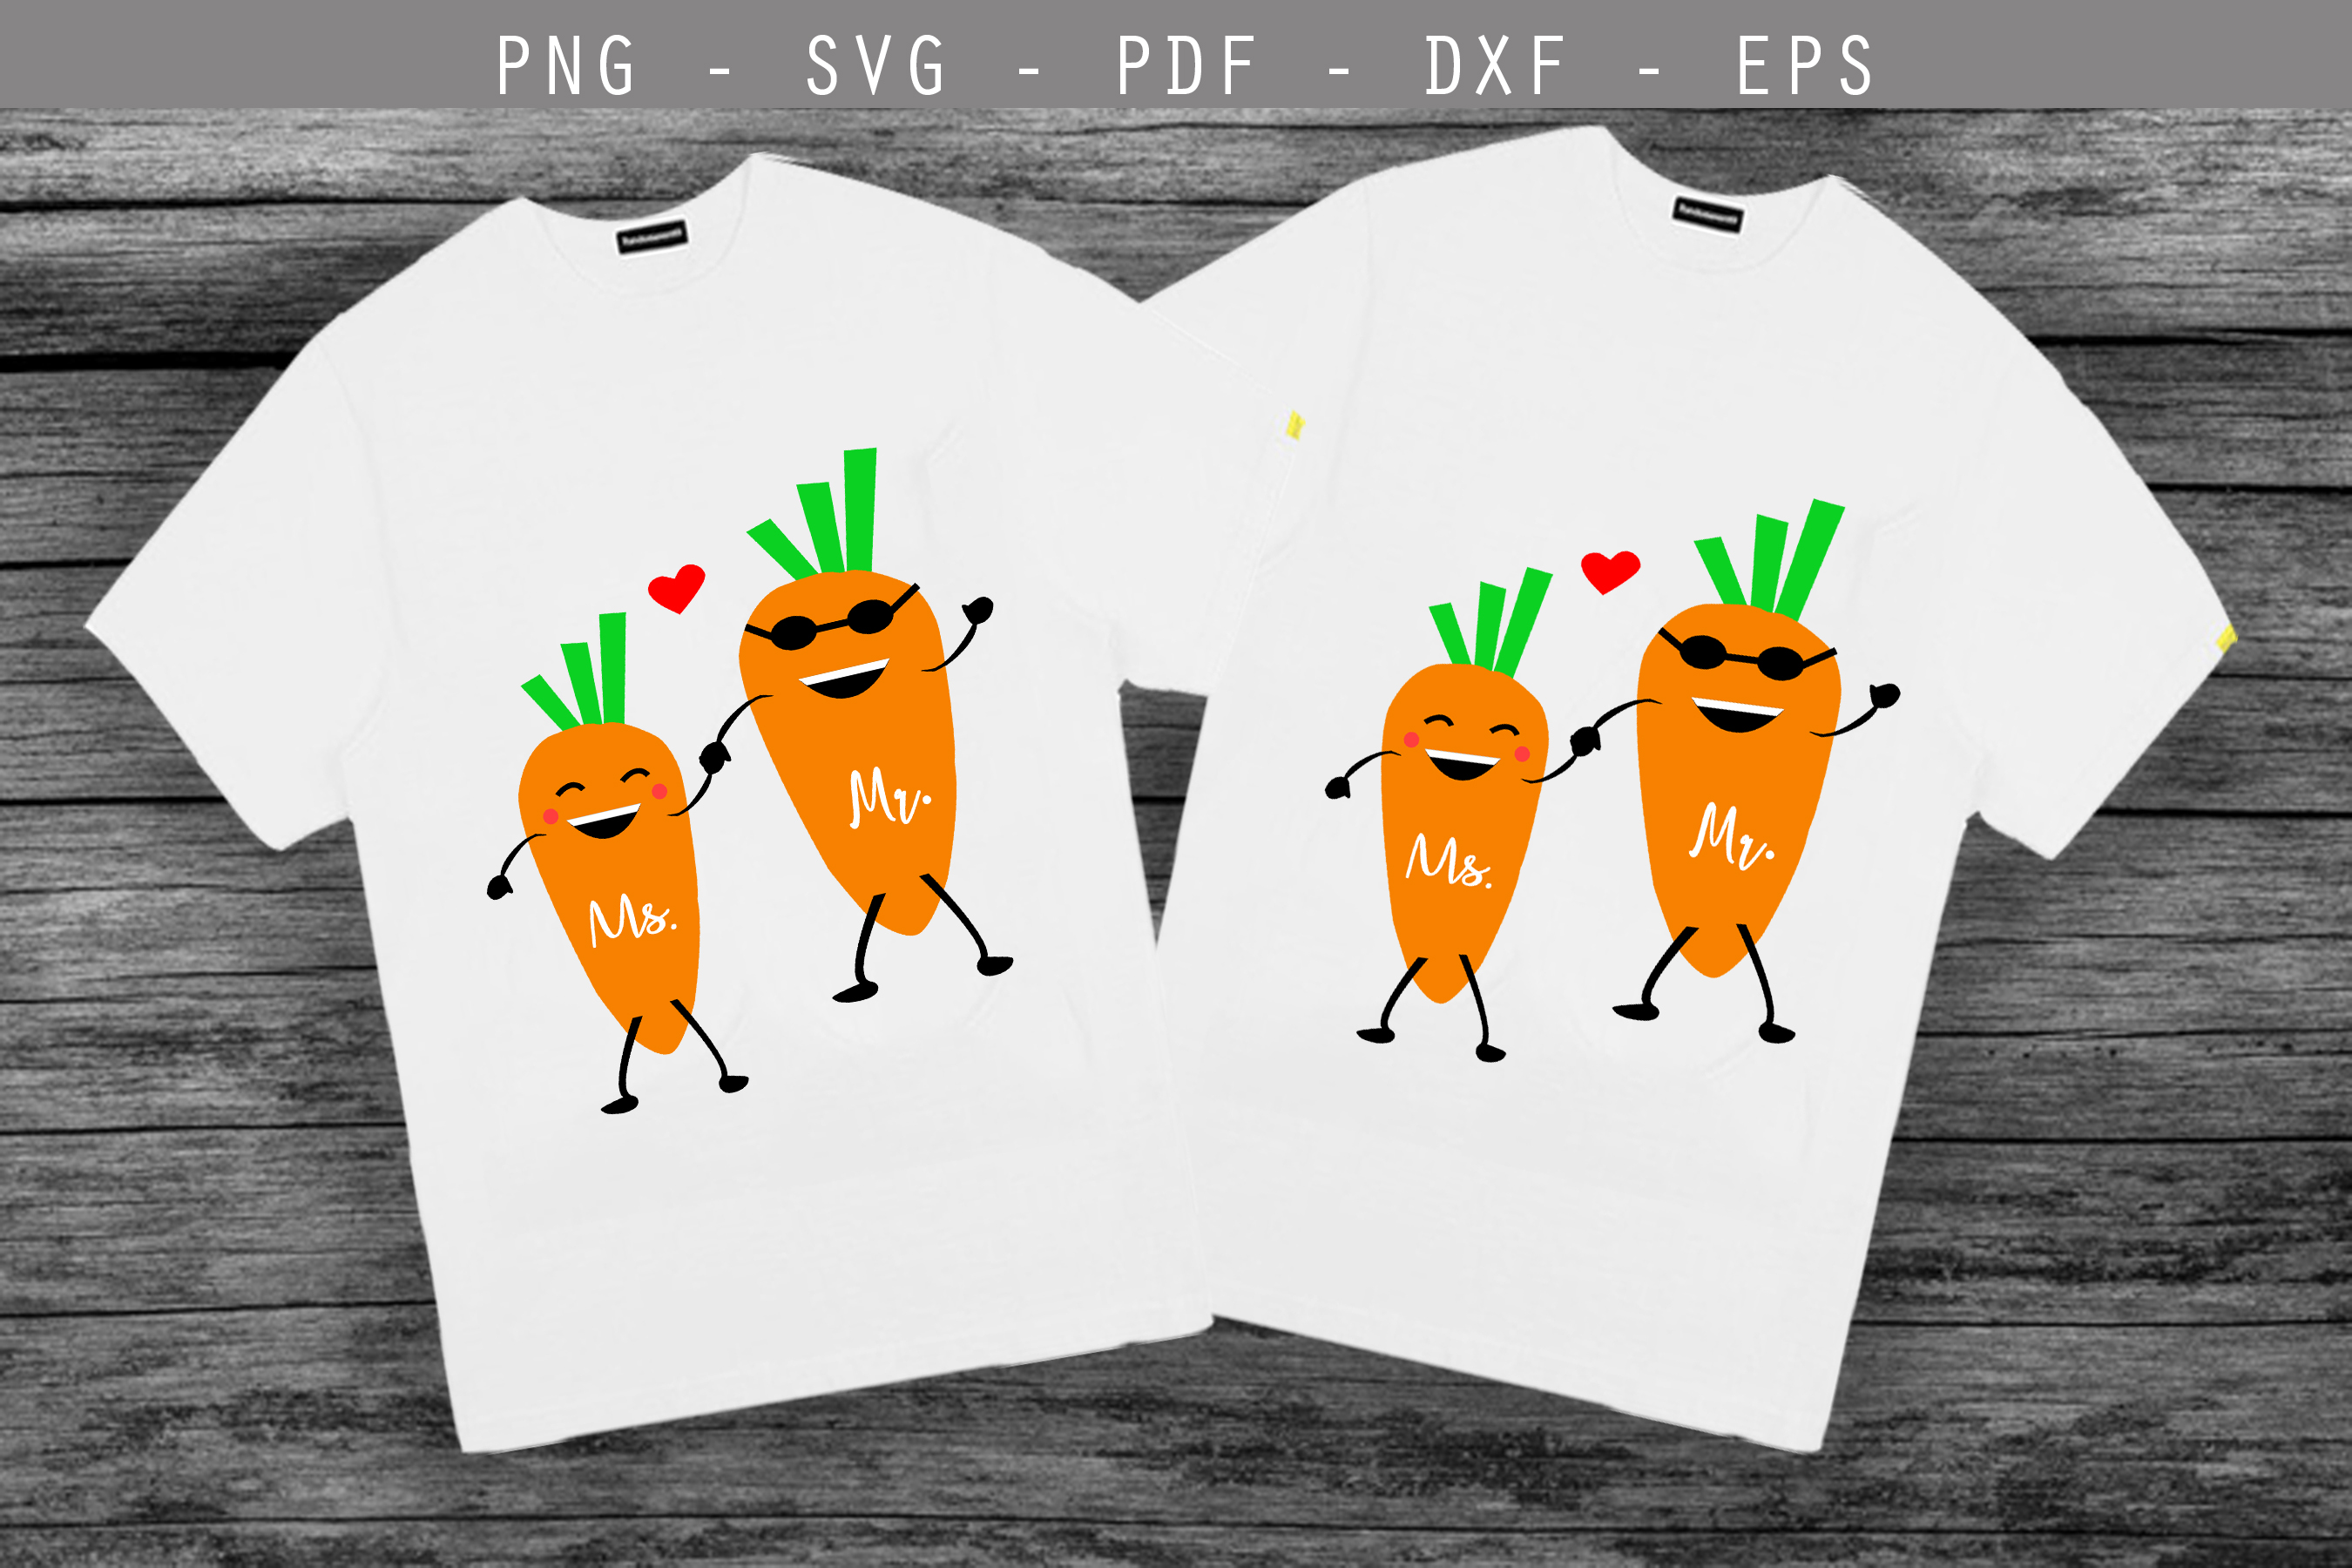 couple svg,love svg,carrot svg,she and he svg, mr mrs svg example image 1